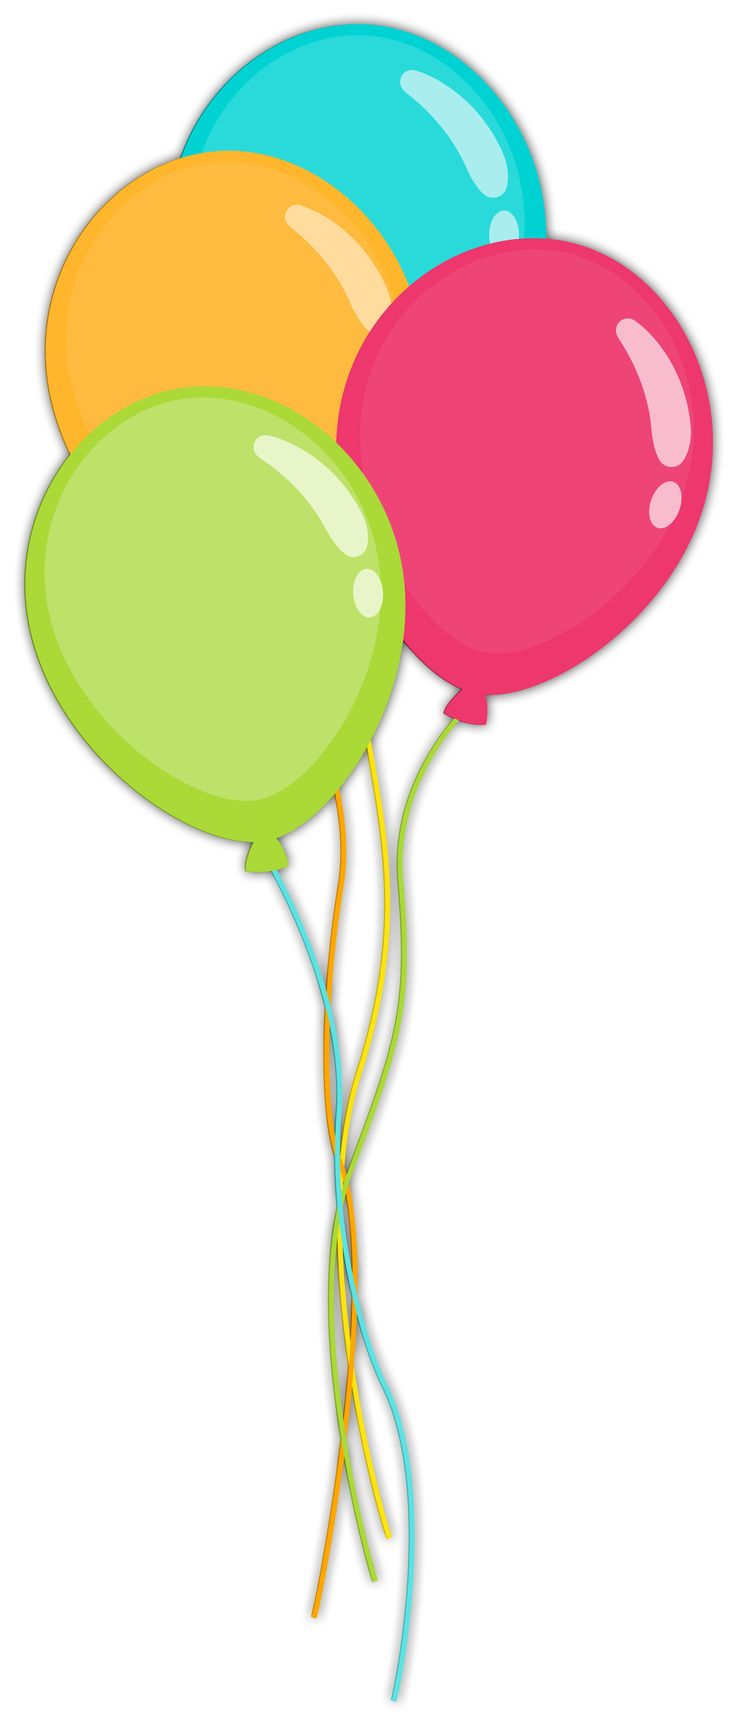 736x1726 Cartoon Balloons Clip Art 101 Clip Art